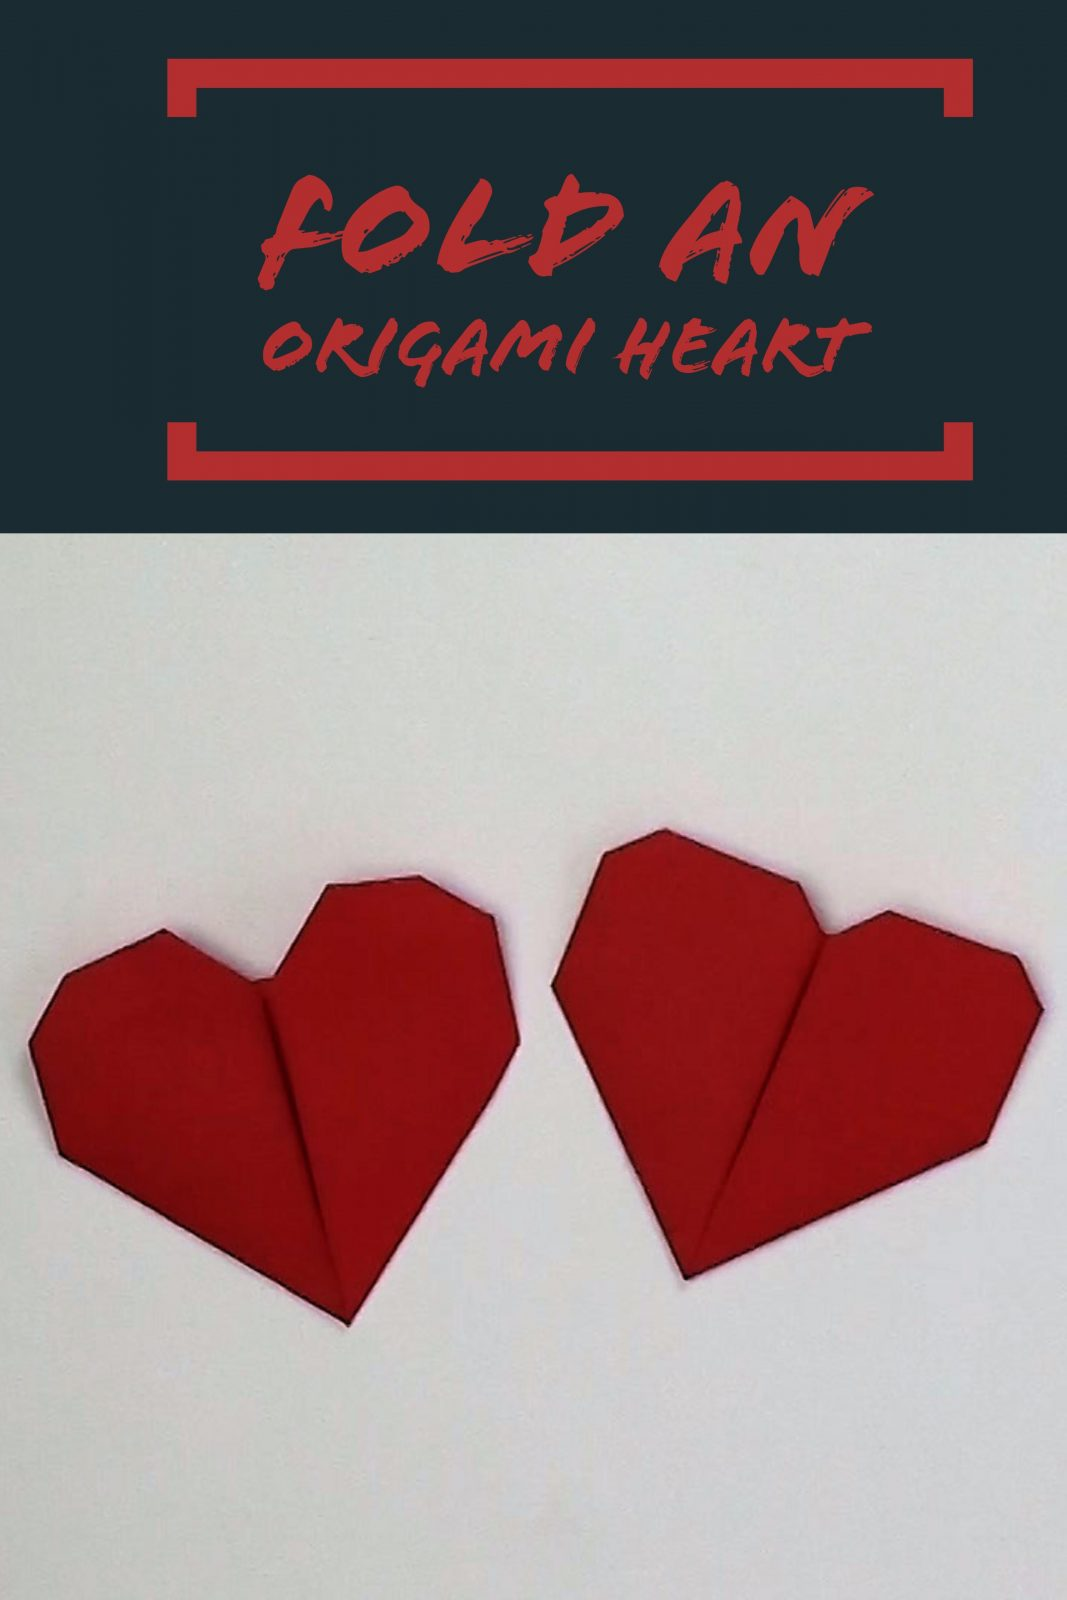 Howto fold an origami heart super easy. Make 2 hearts from one piece of origami paper.  Greatfora Valentine's Day activity or card #favemom #origami #valentines